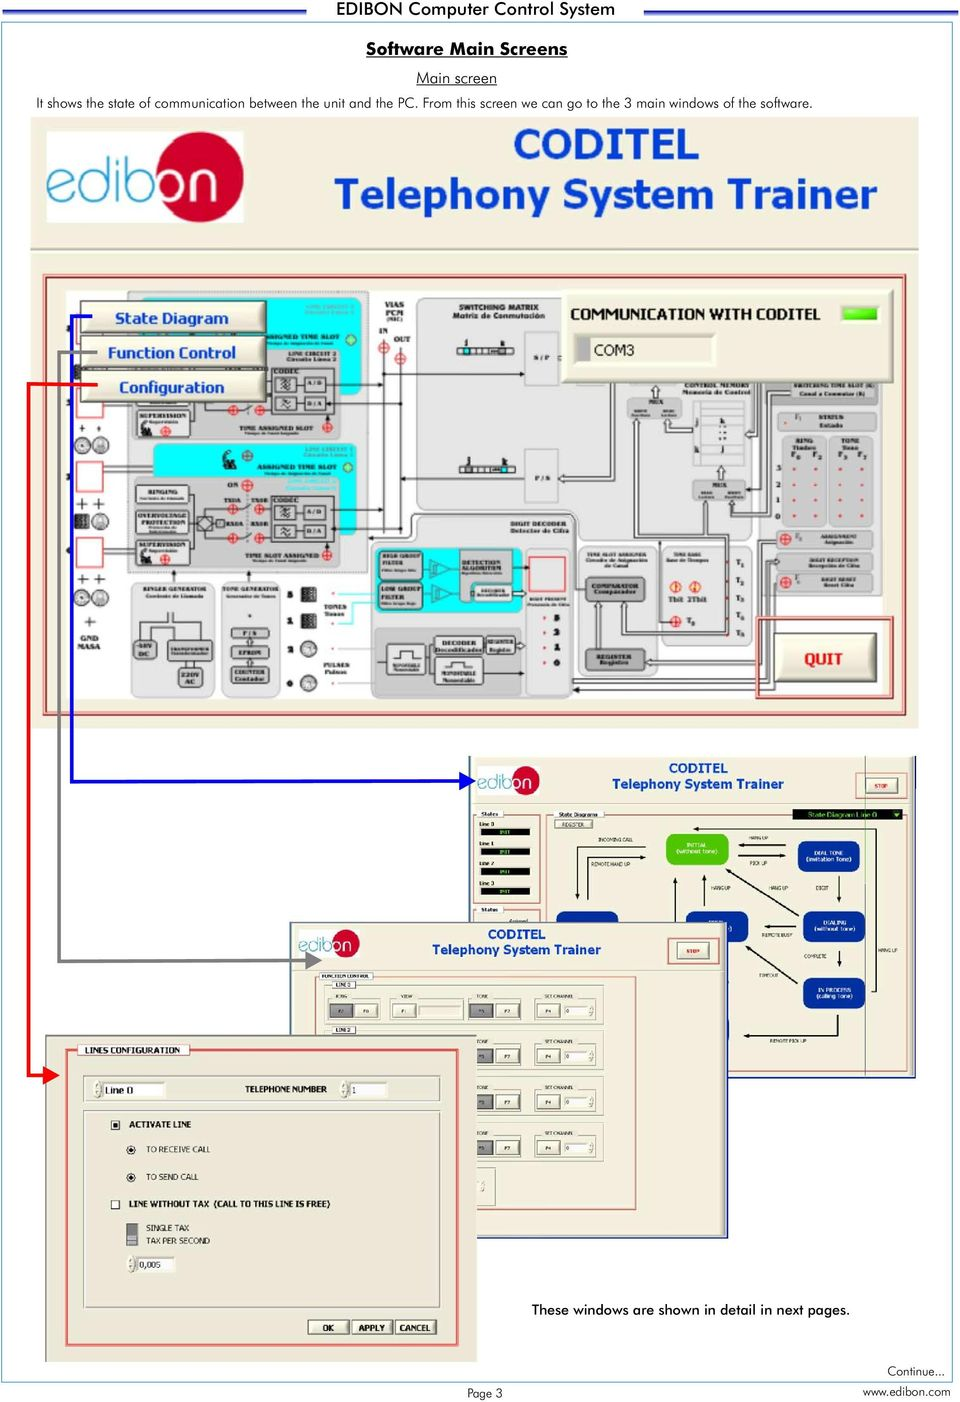 Telephony Systems Trainer Coditel Pdf Telephone Switcher Circuit Diagram From This Screen We Can Go To The 3 Main Windows Of Software